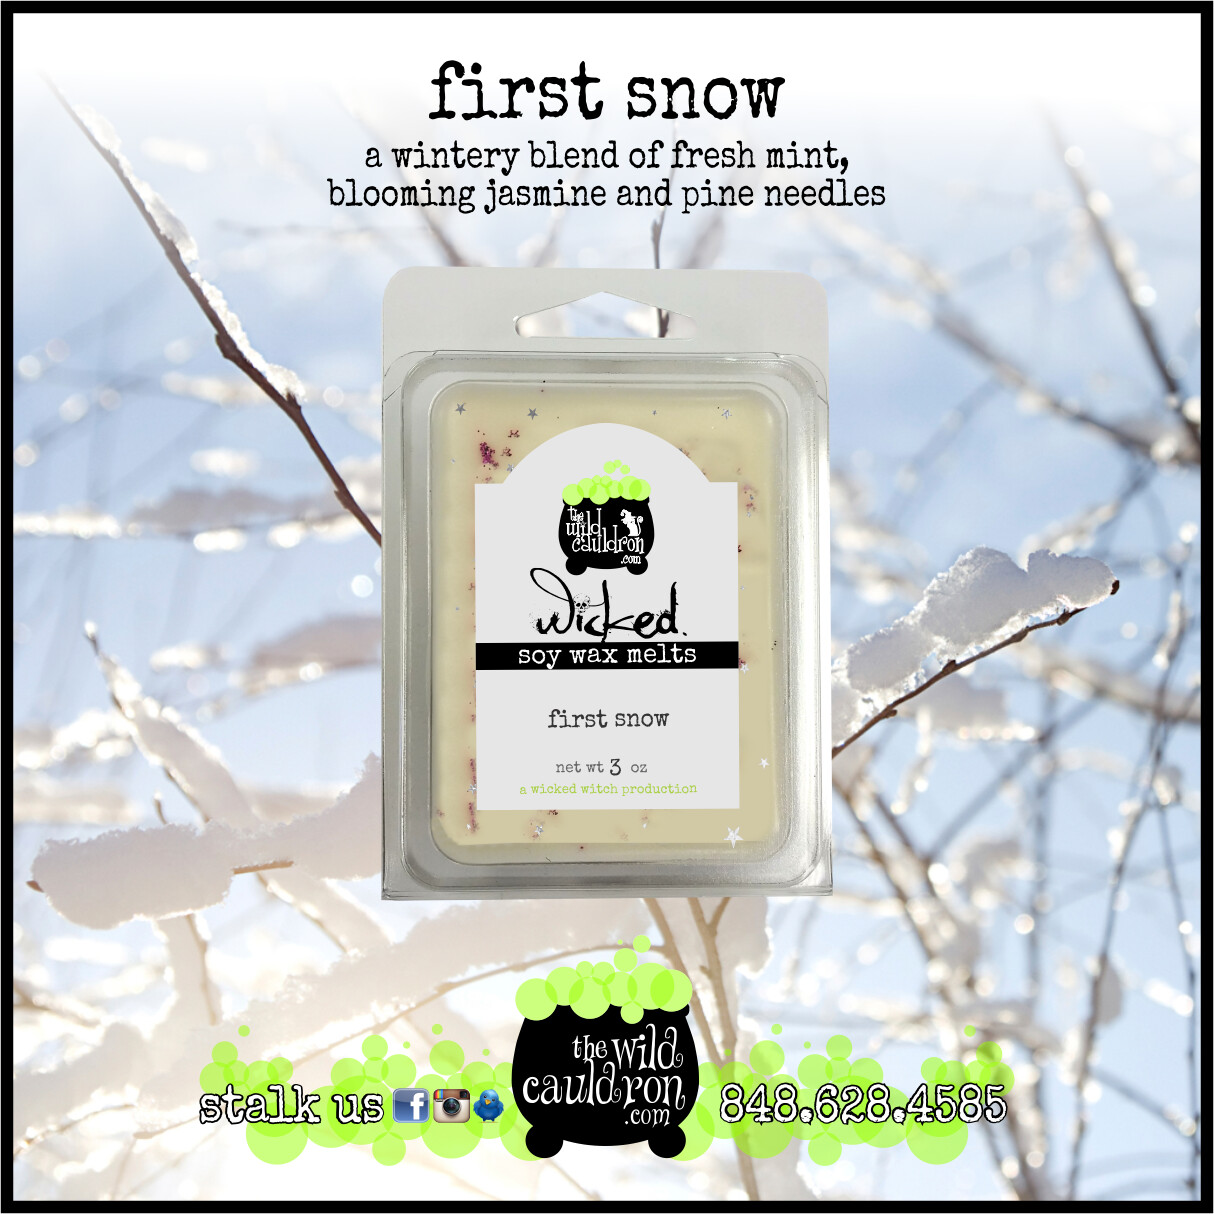 First Snow Wicked Wax Melts